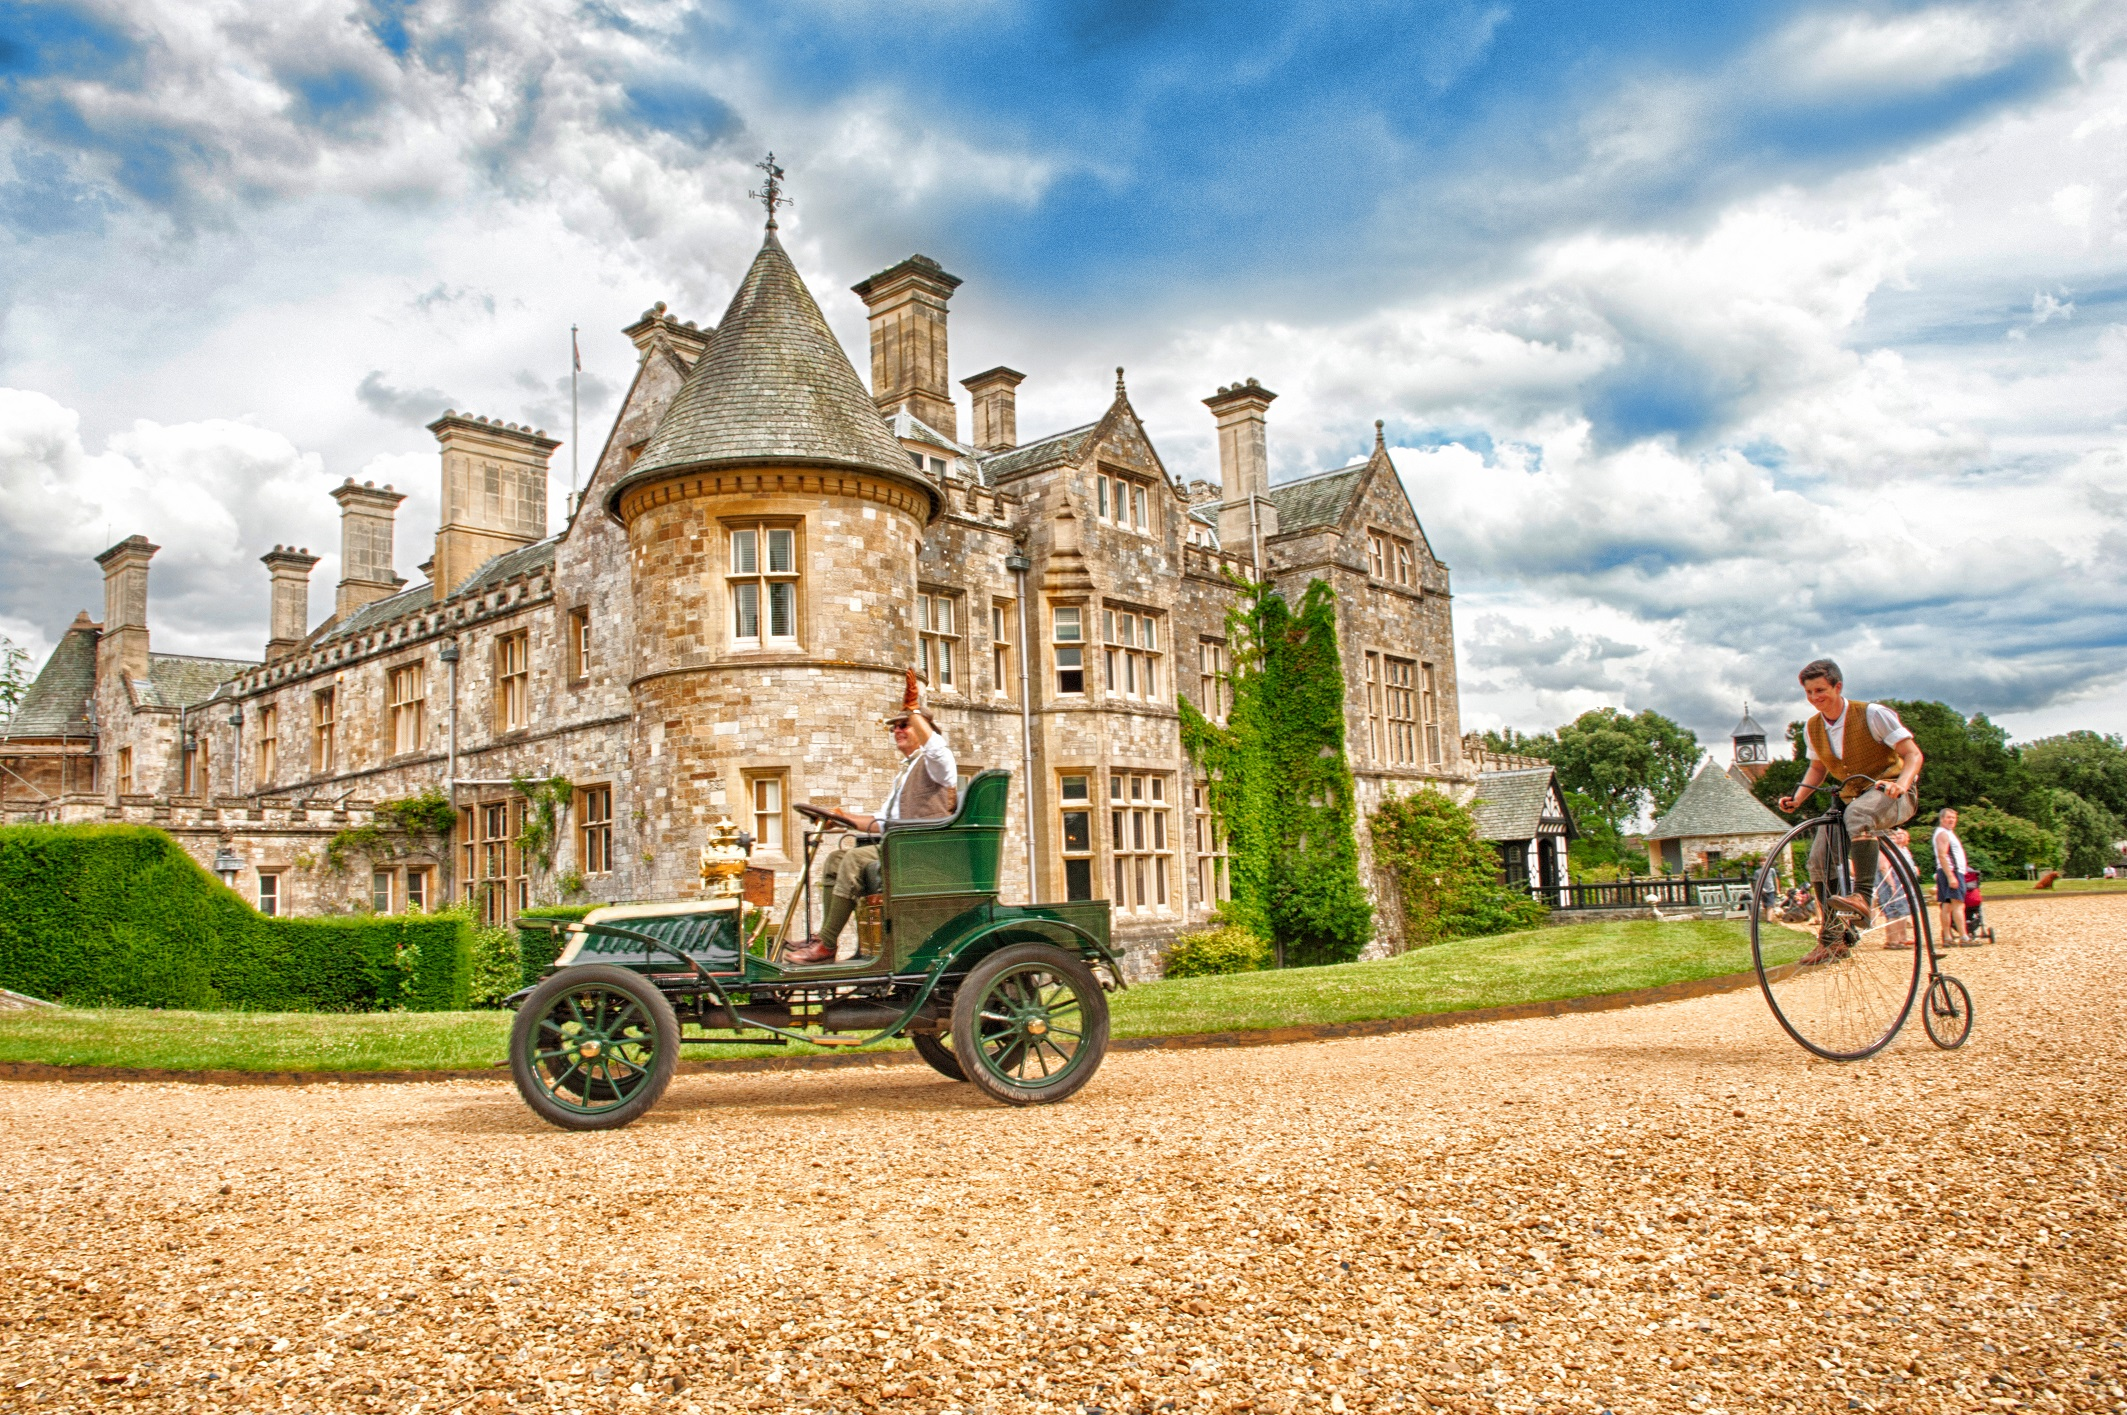 Palace House Beaulieu with vintage car and penny farthing in foreground